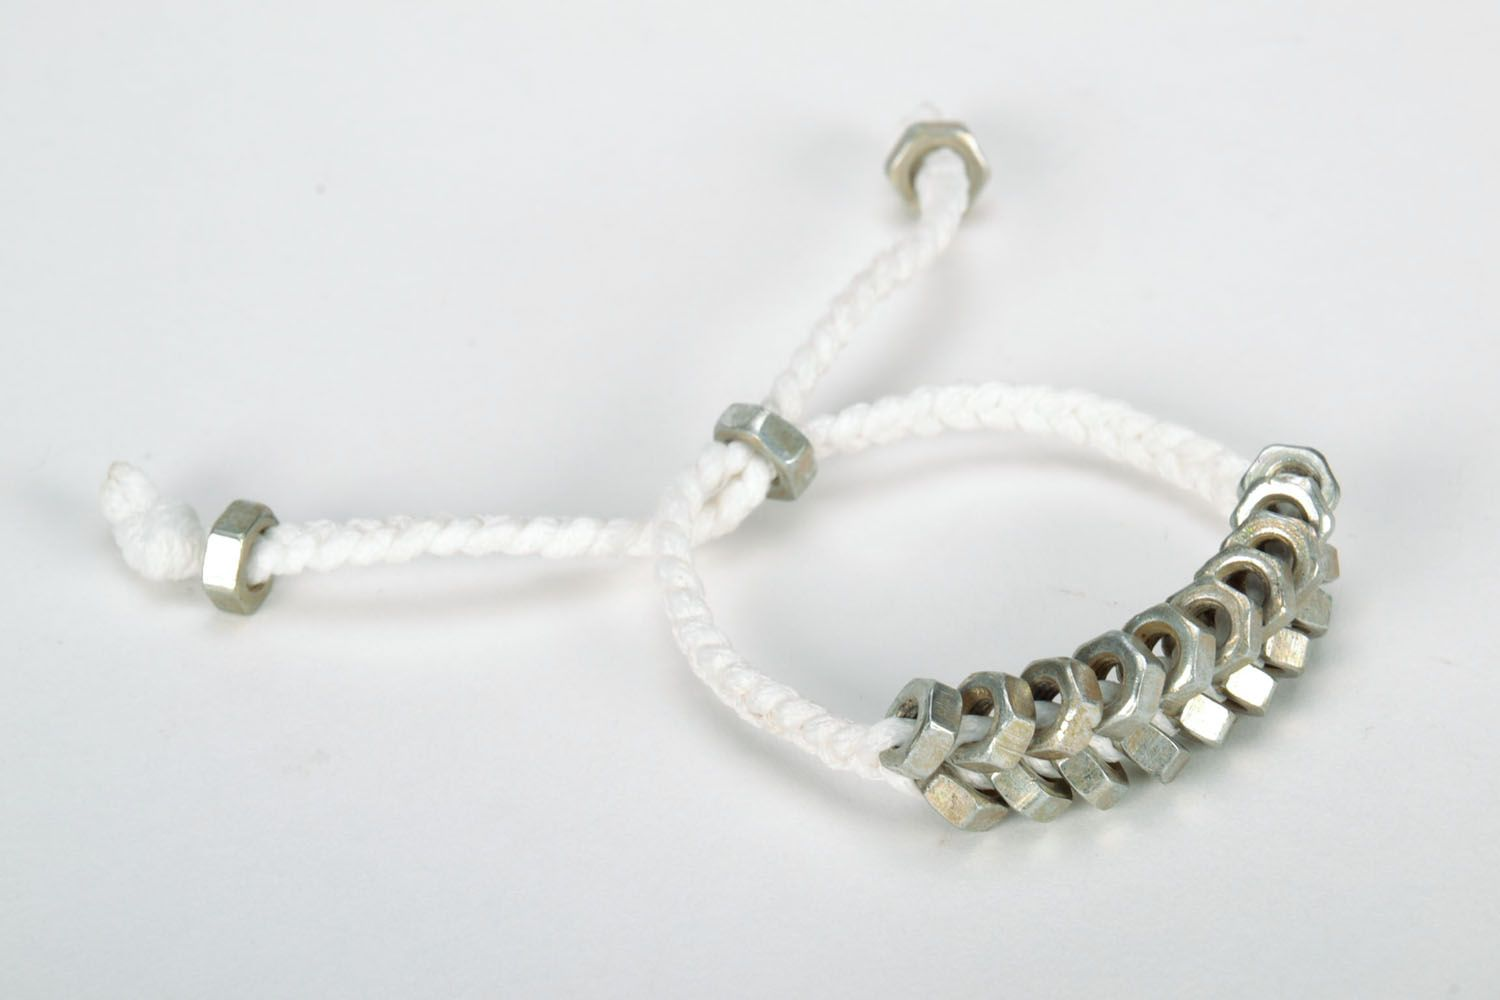 Homemade woven bracelet with metal nuts photo 4